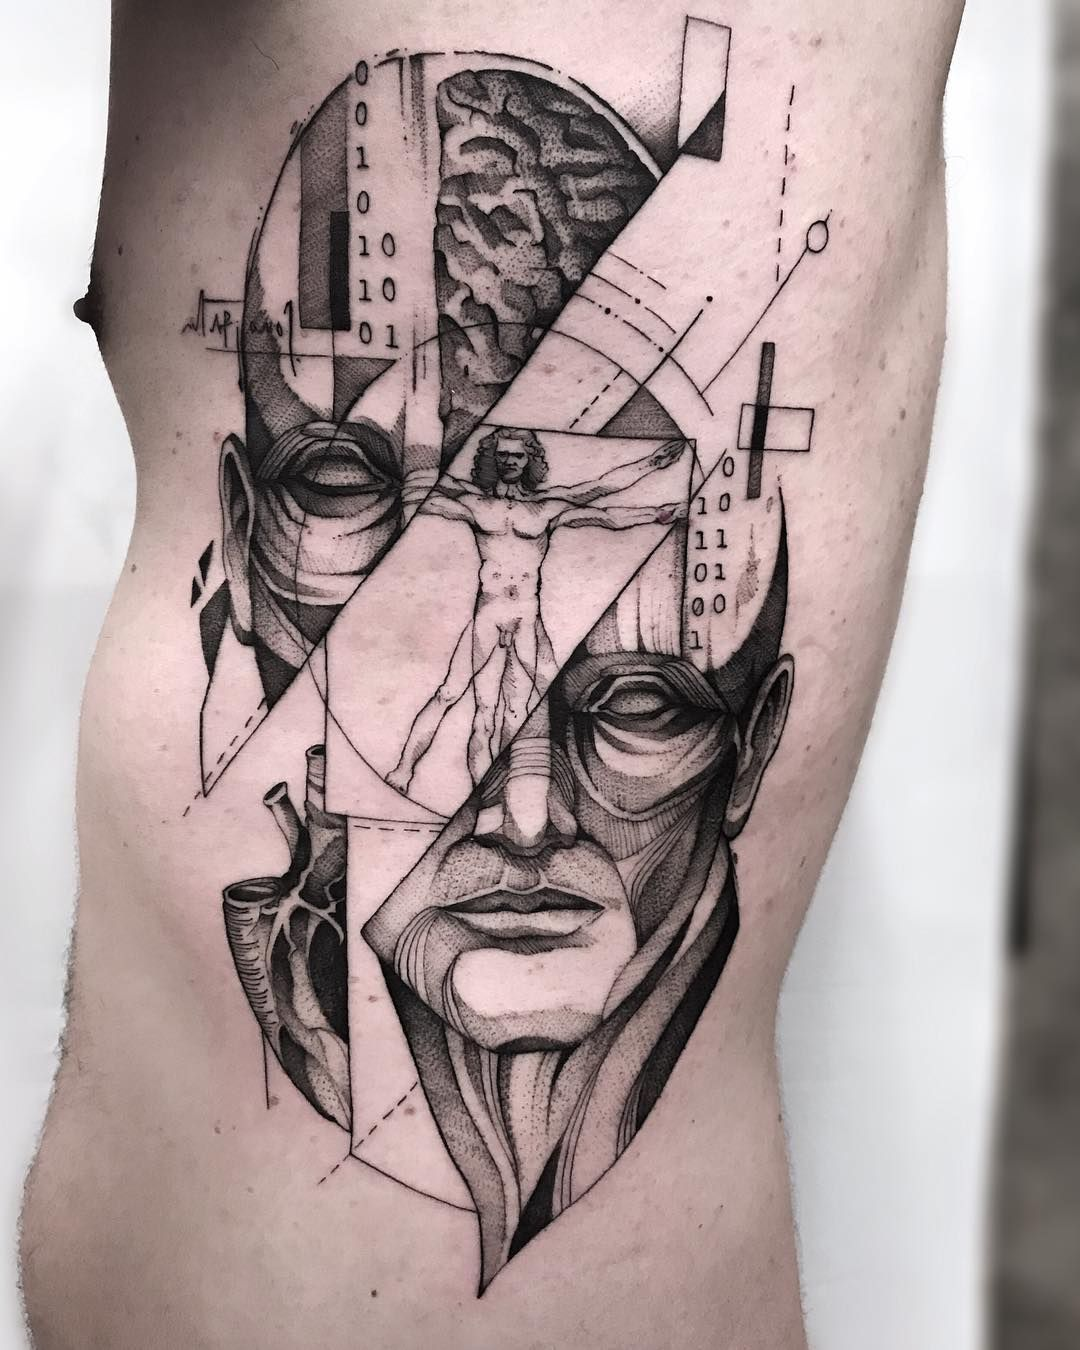 human body diagram tattoo human themed tattoo anatomy tattoo  geometric tattoo  tattoo  human themed tattoo anatomy tattoo